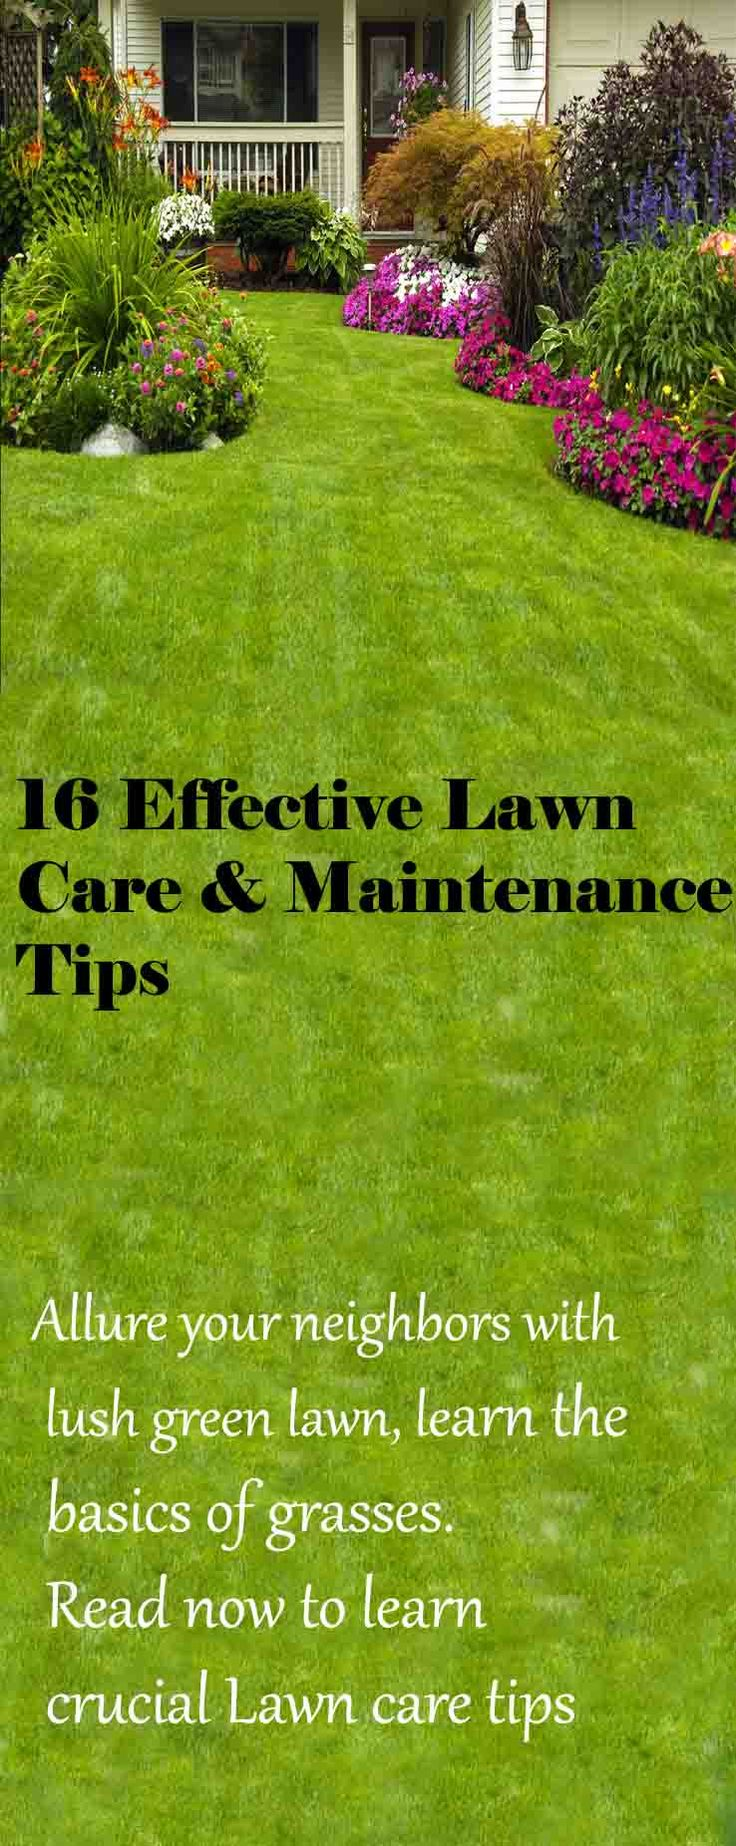 best ideas about lawn care diy landscaping ideas 16 effective lawn care and maintenance tips